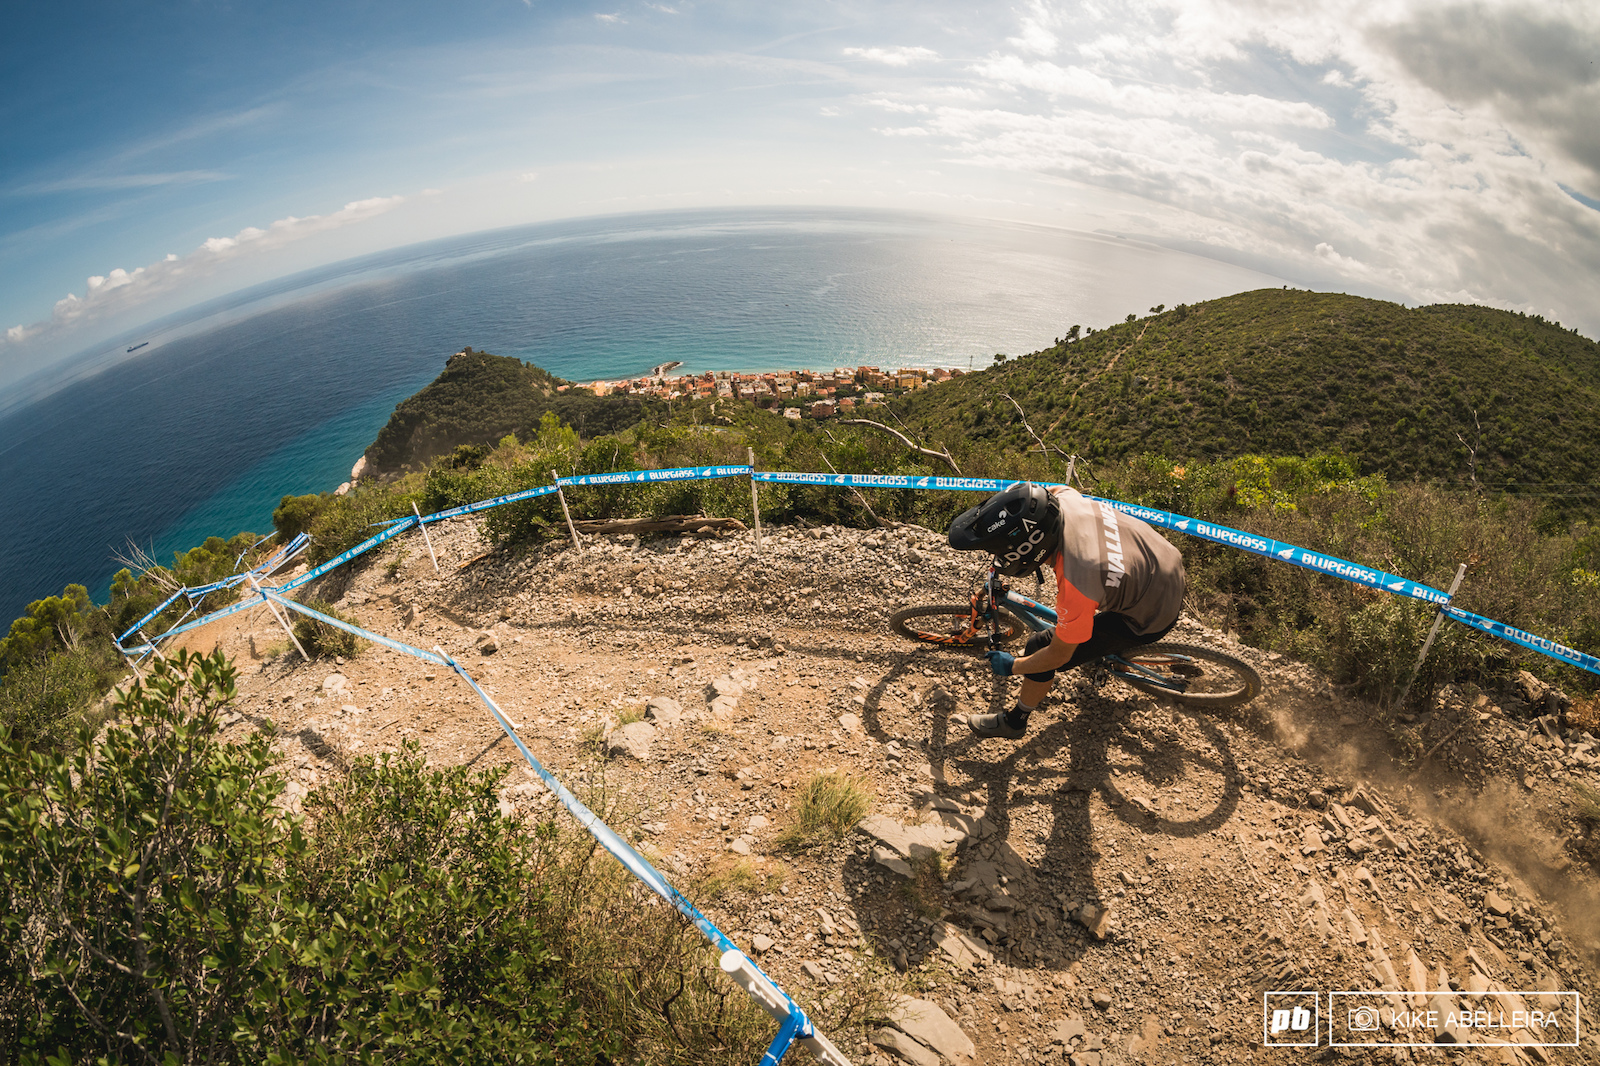 TON Finale ligure 2019 A classic view of DH men with Varigotti at the bottom and Baia dei Saraceni on the left and its turquoise water.